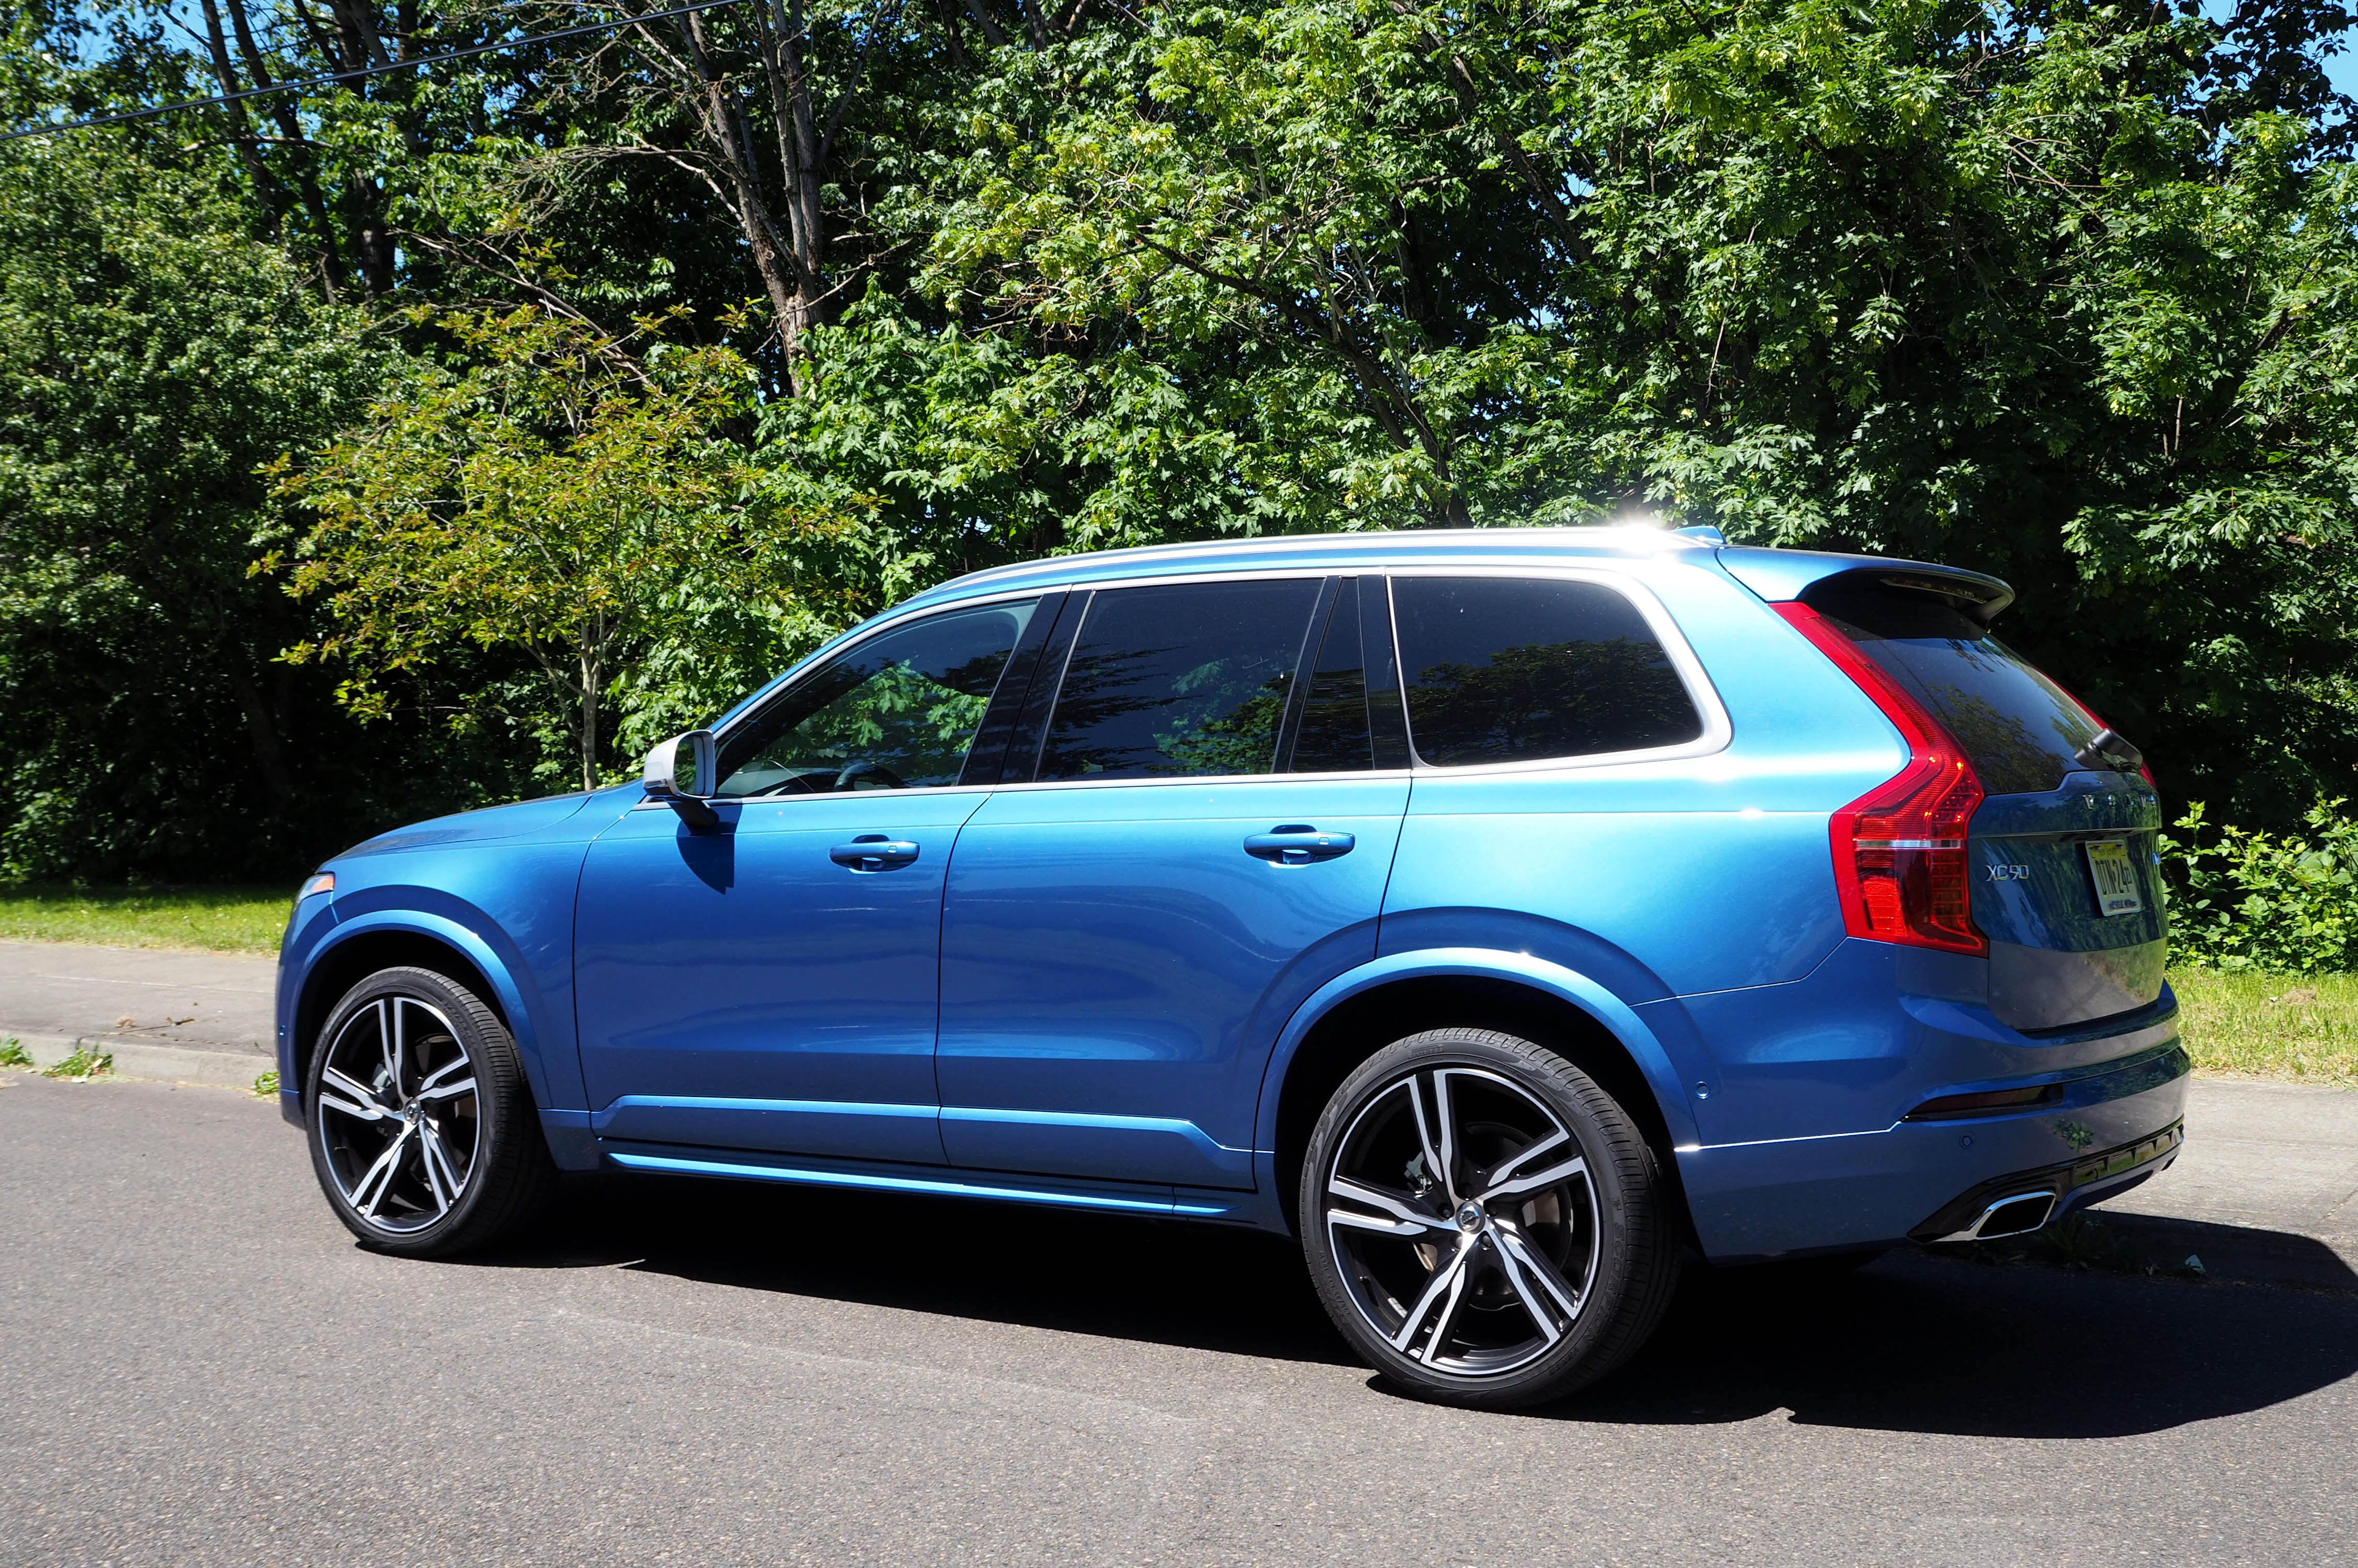 Semi-driving the semi-autonomous 2016 Volvo XC90 | TechCrunch